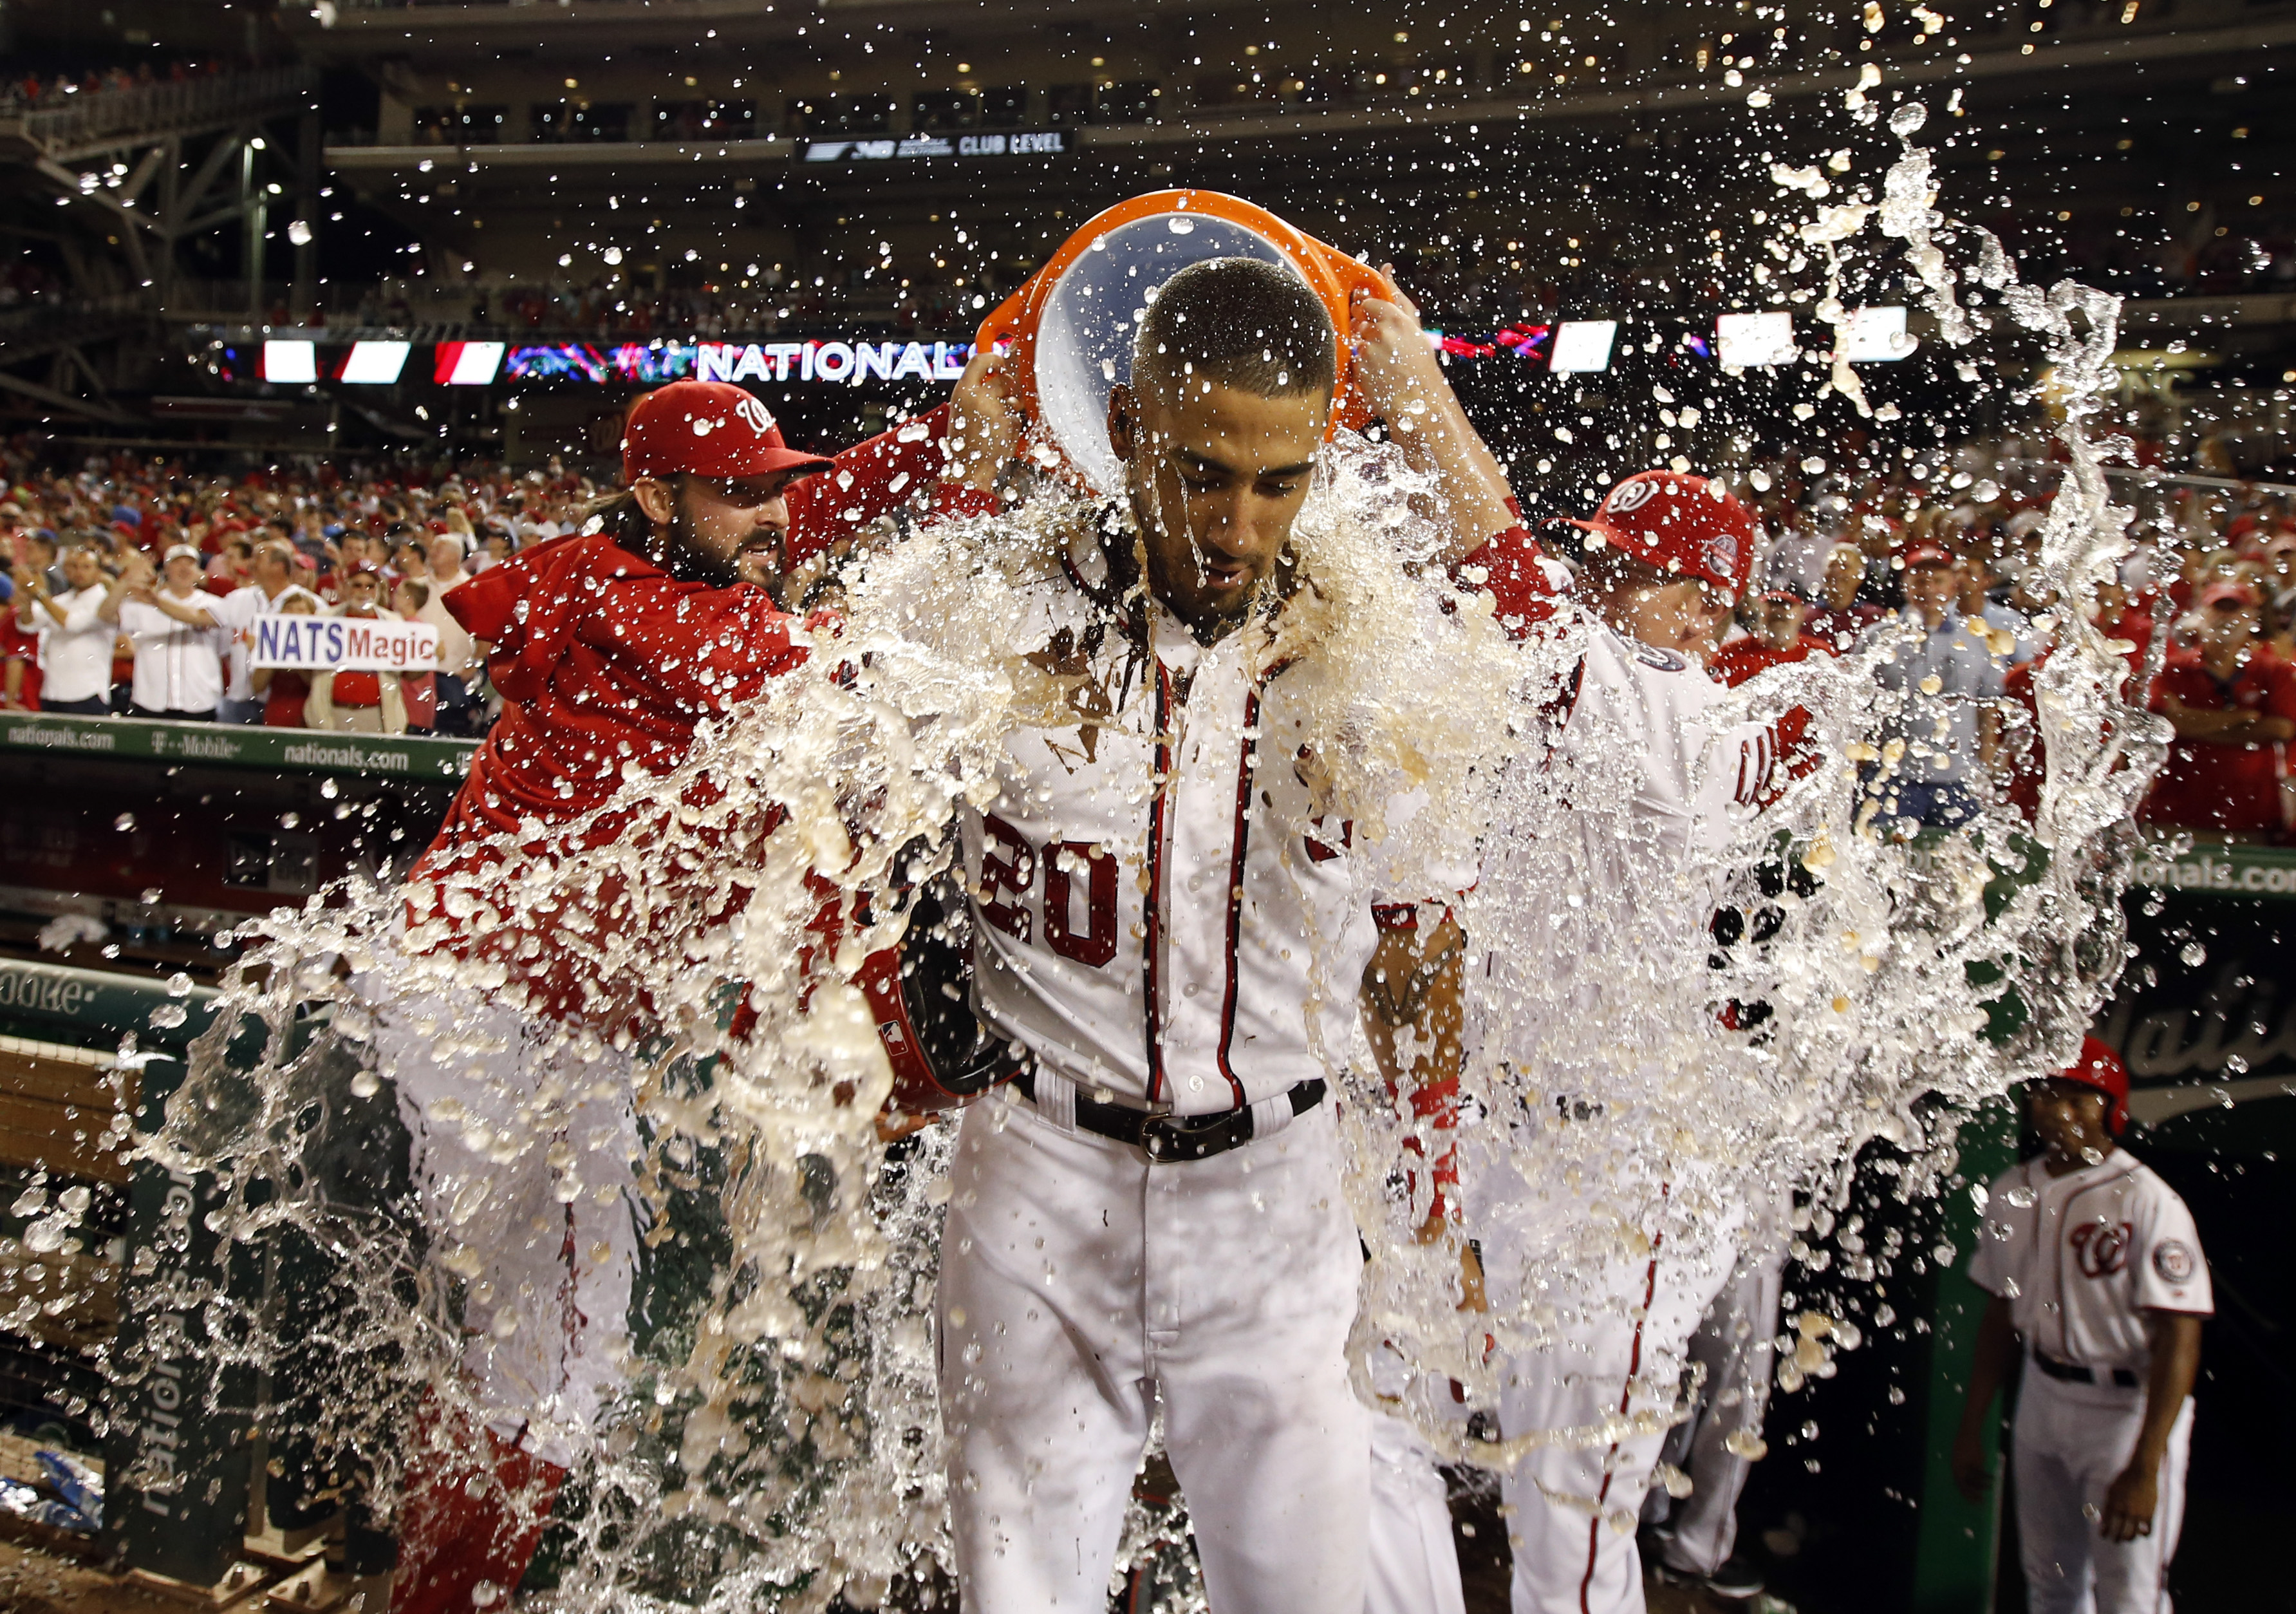 CORRECTS THAT DESMOND HIT SACRIFICE FLY, INSTEAD OF SINGLE - Washington Nationals' Ian Desmond is doused after the team's baseball game against the Atlanta Braves at Nationals Park, Wednesday, June 24, 2015, in Washington. Desmond hit a sacrifice fly to s